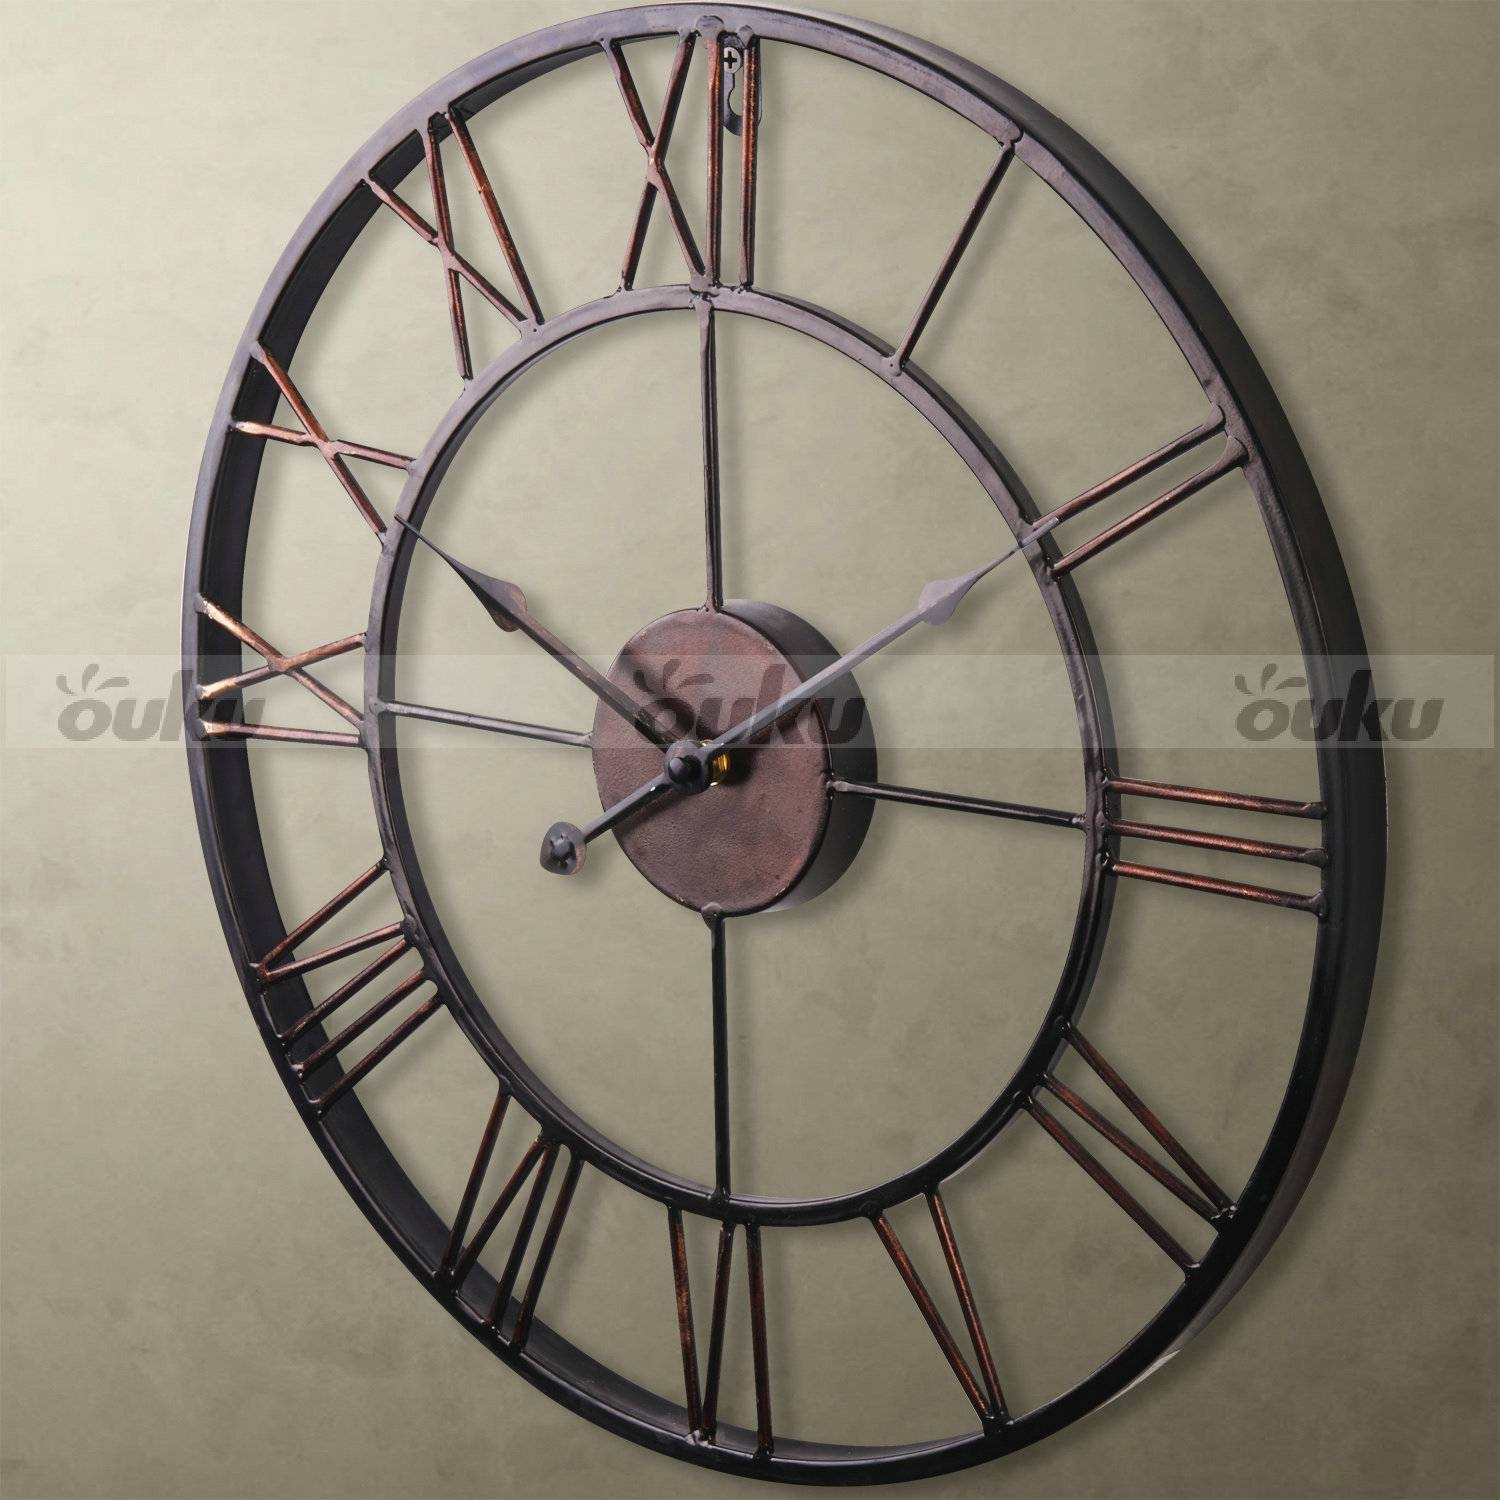 Wall Decor: Metal Wall Clock Images. Design Decor (View 20 of 20)